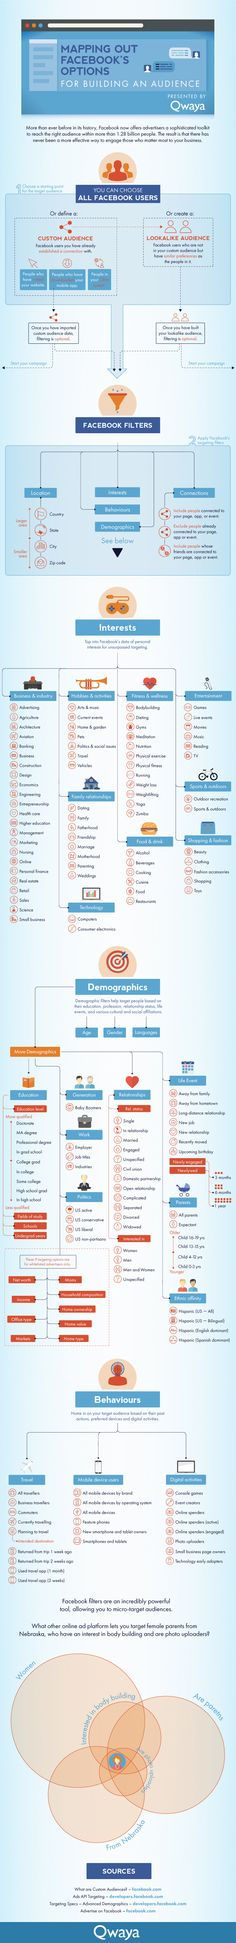 Mapping out Facebook's options for building an audience - #SocialMedia #Infographic